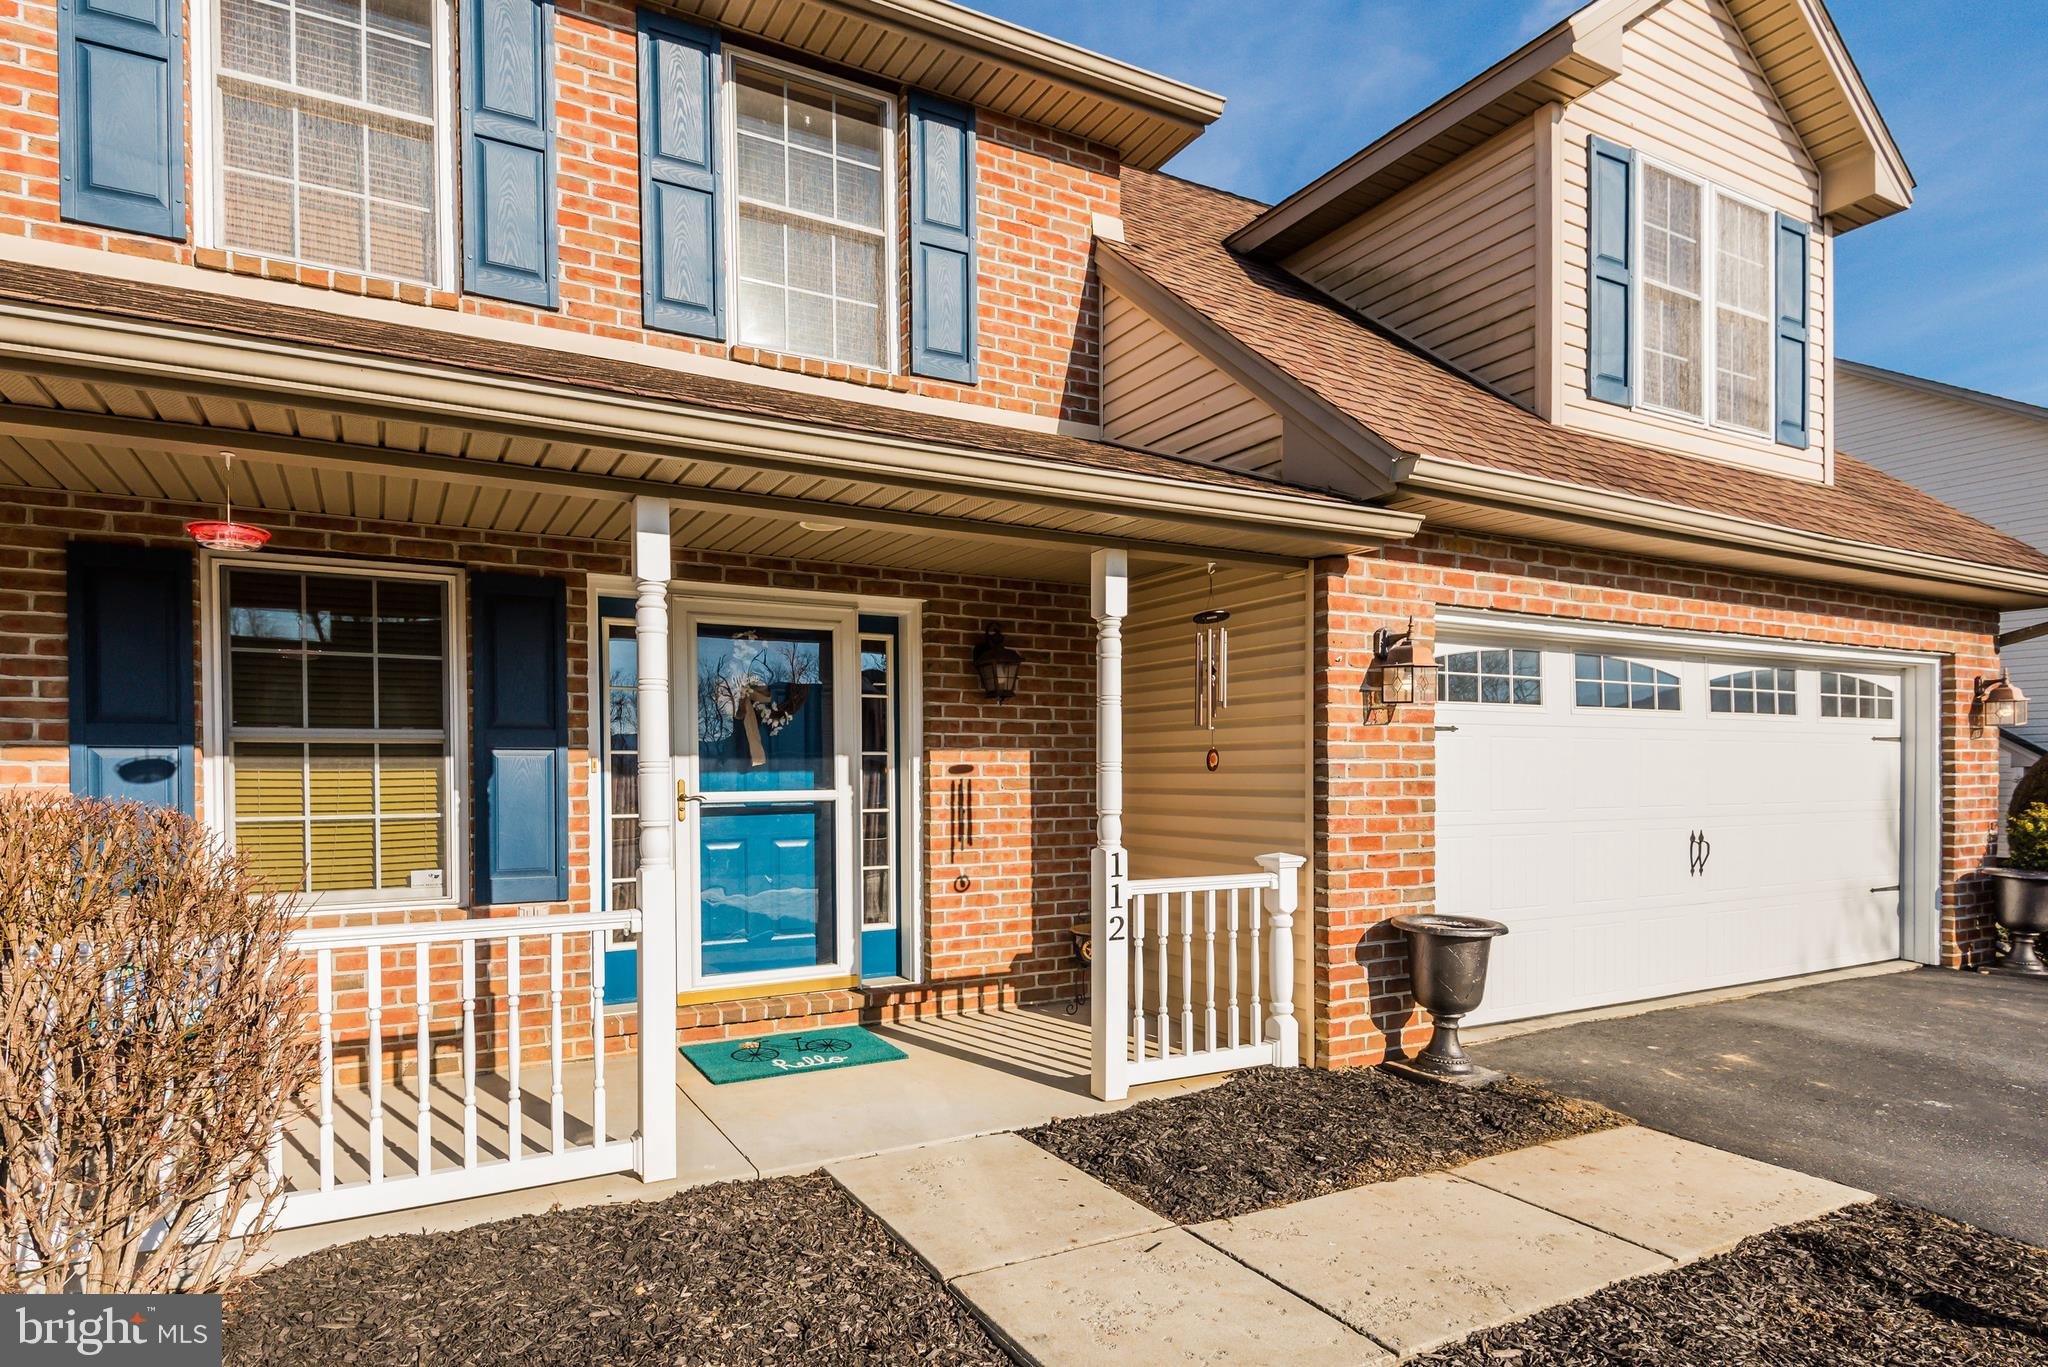 112 WESTGATE DRIVE, MOUNT HOLLY SPRINGS, PA 17065